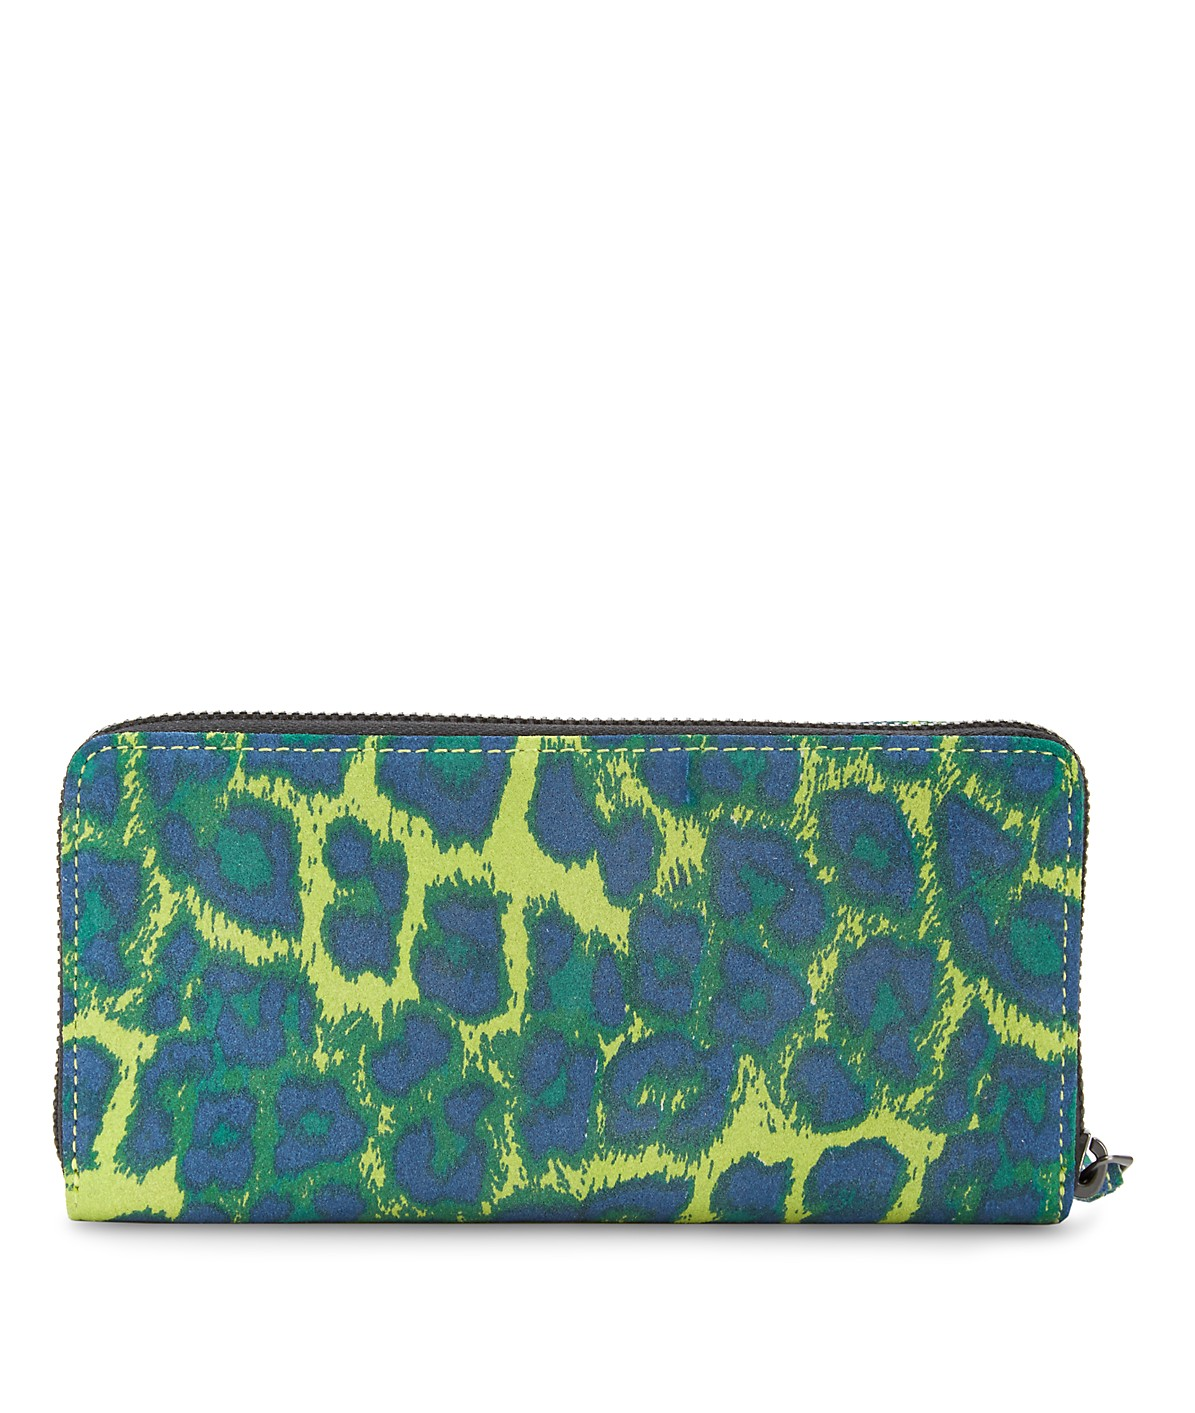 SallyF7 wallet from liebeskind